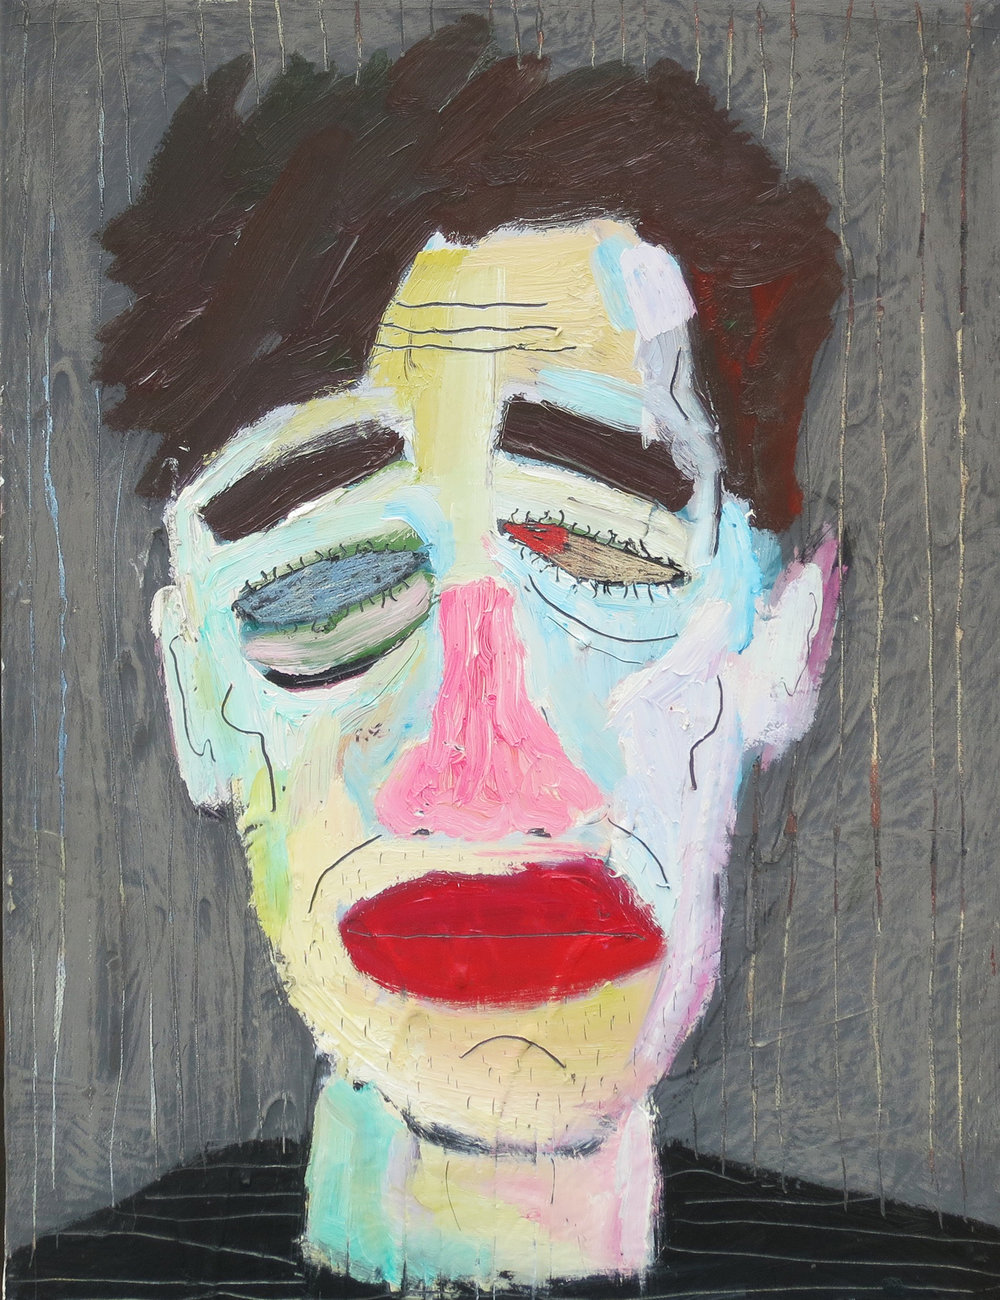 Self-Portait as Punchinello; Oil and marble dust on canvas, (14 x 16 inches), 2015.jpg